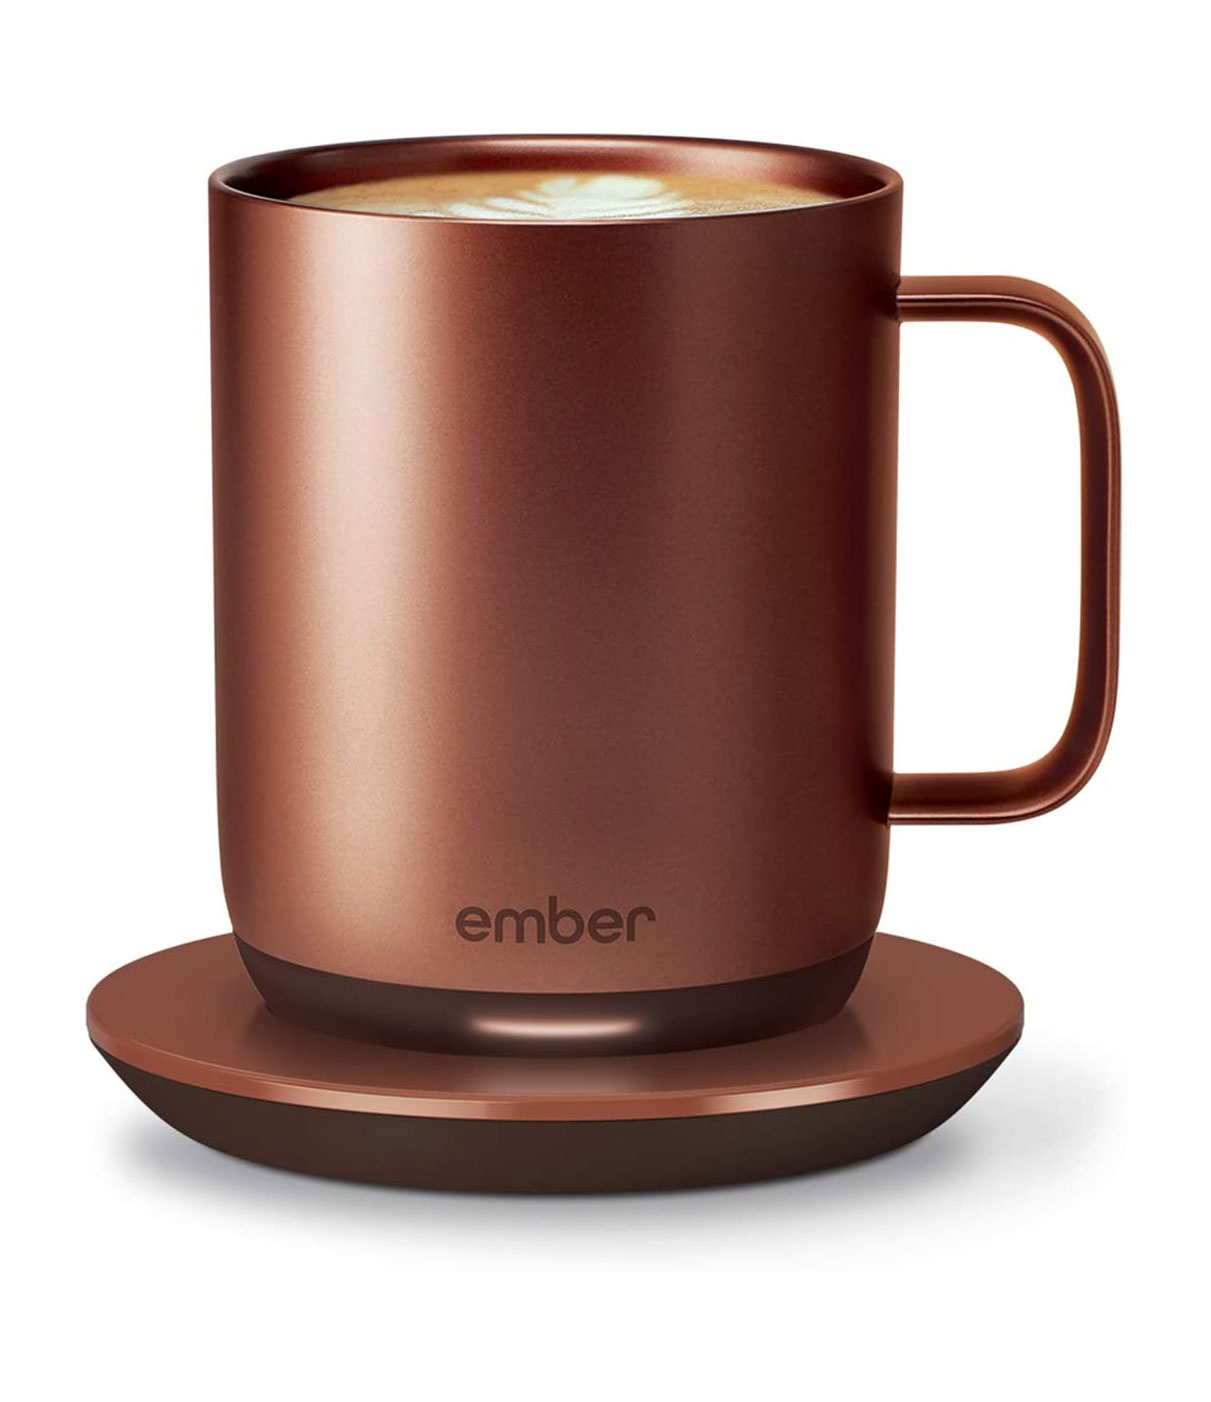 Valentine's Day gifts for her, girlfriend, wife - Ember Temperature Control Smart Mug